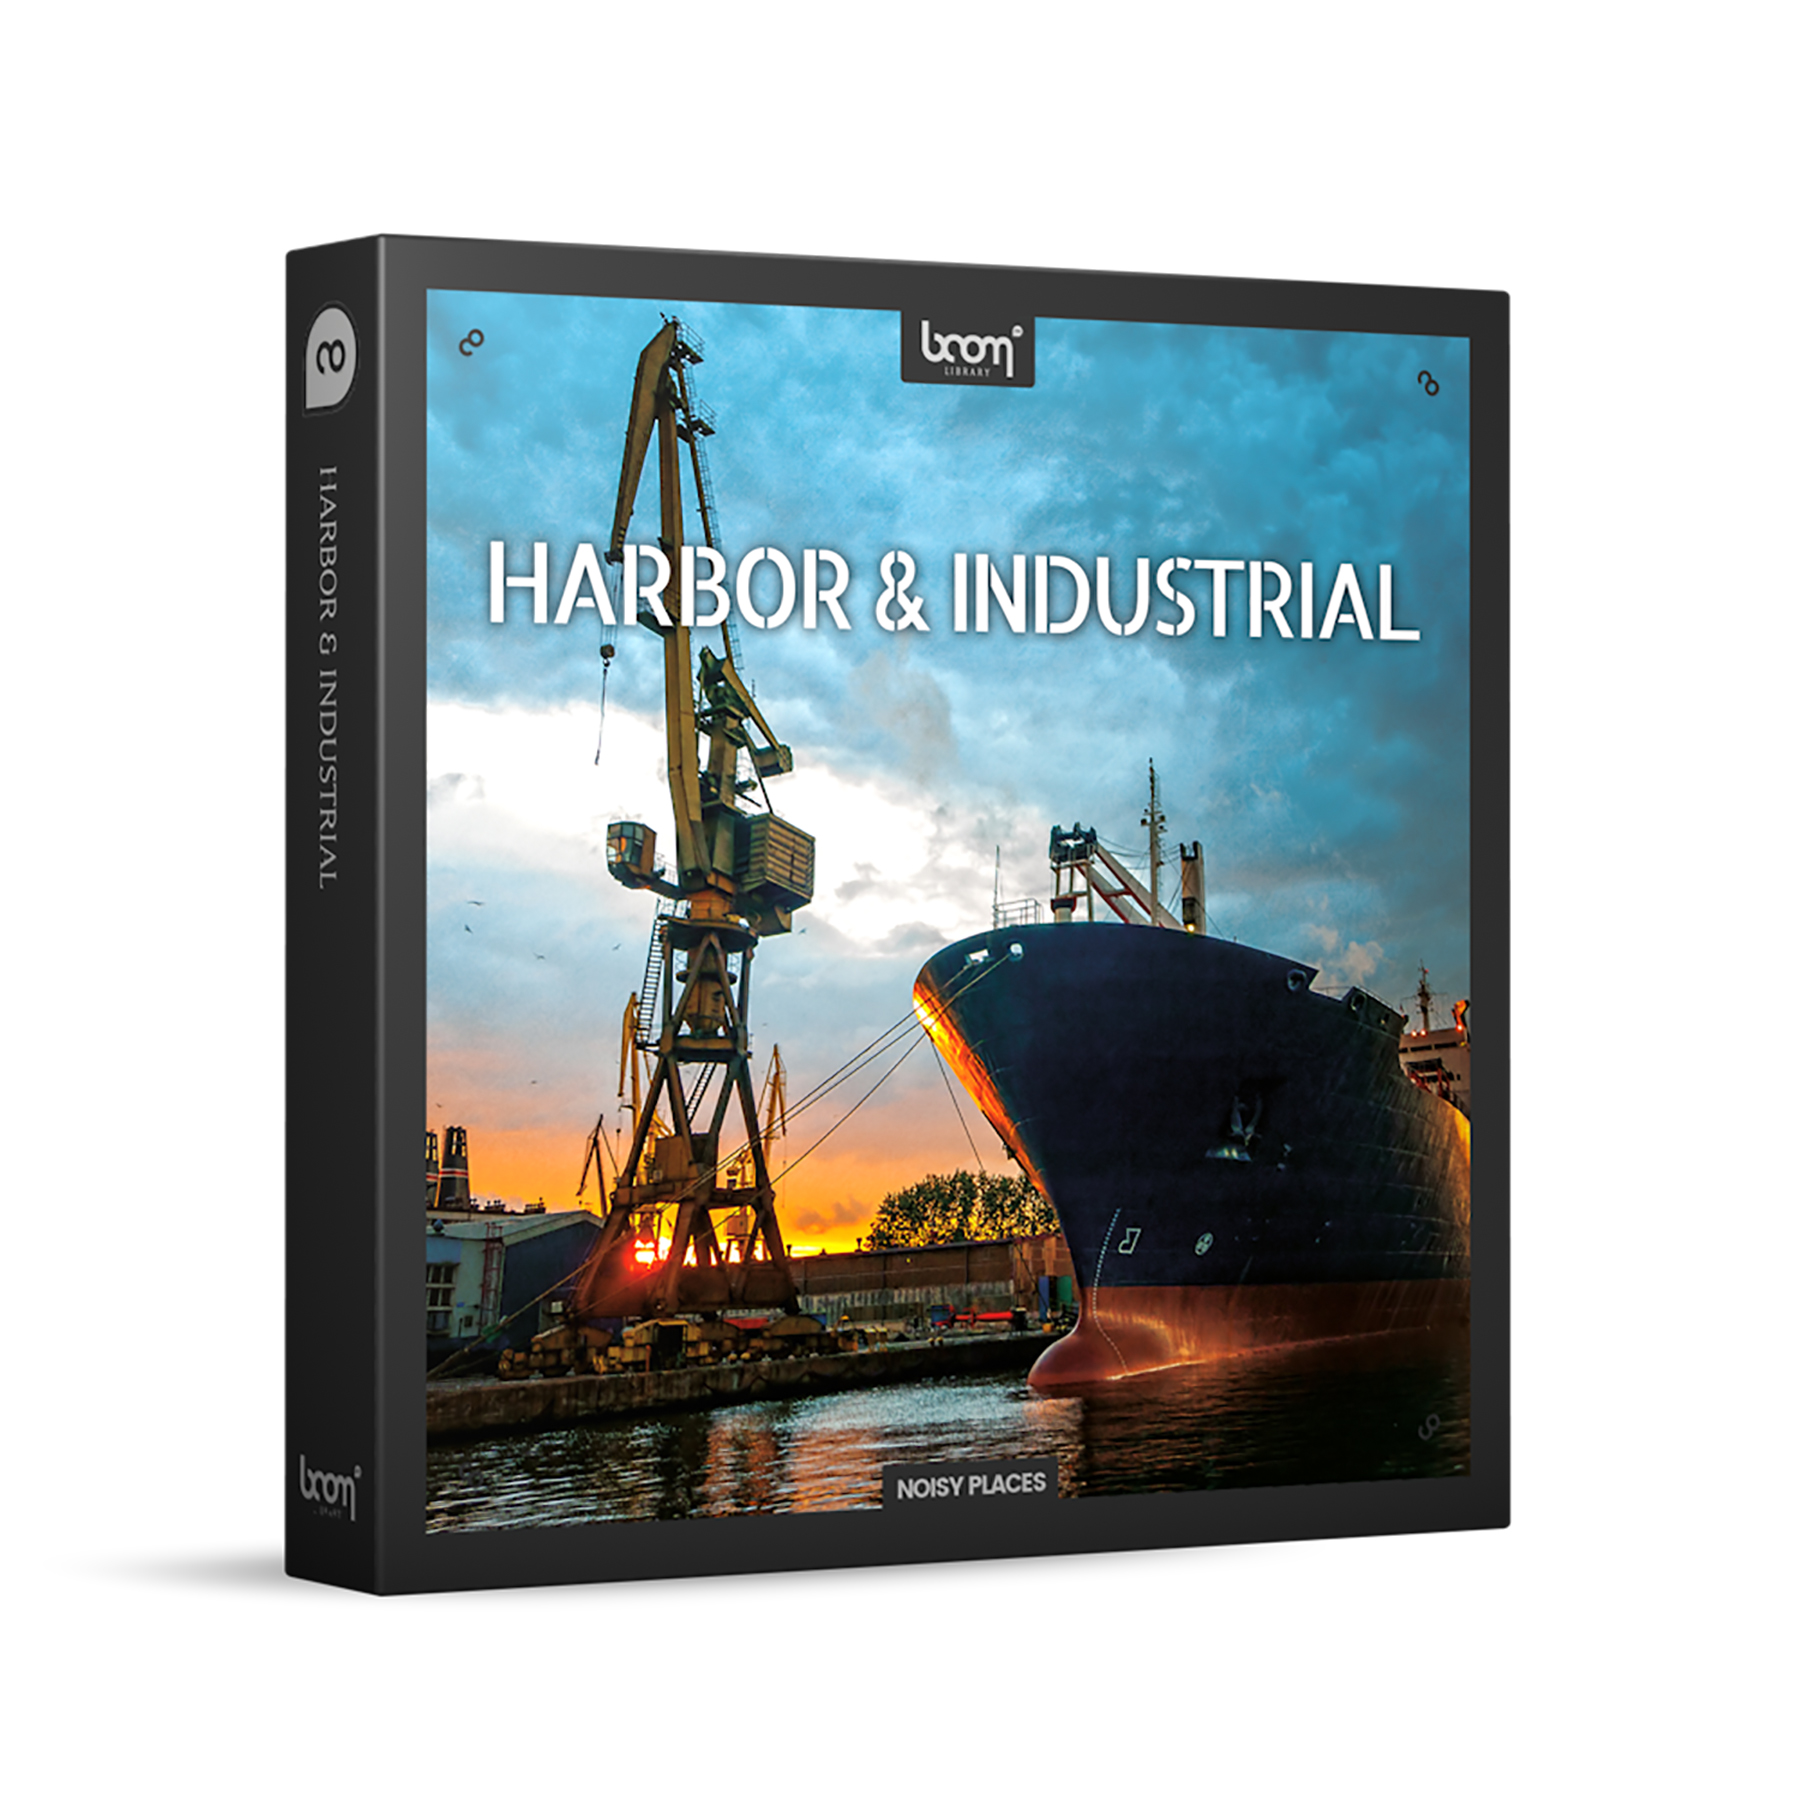 News: Boom Library mit Sound-Paket Harbor & Industrial